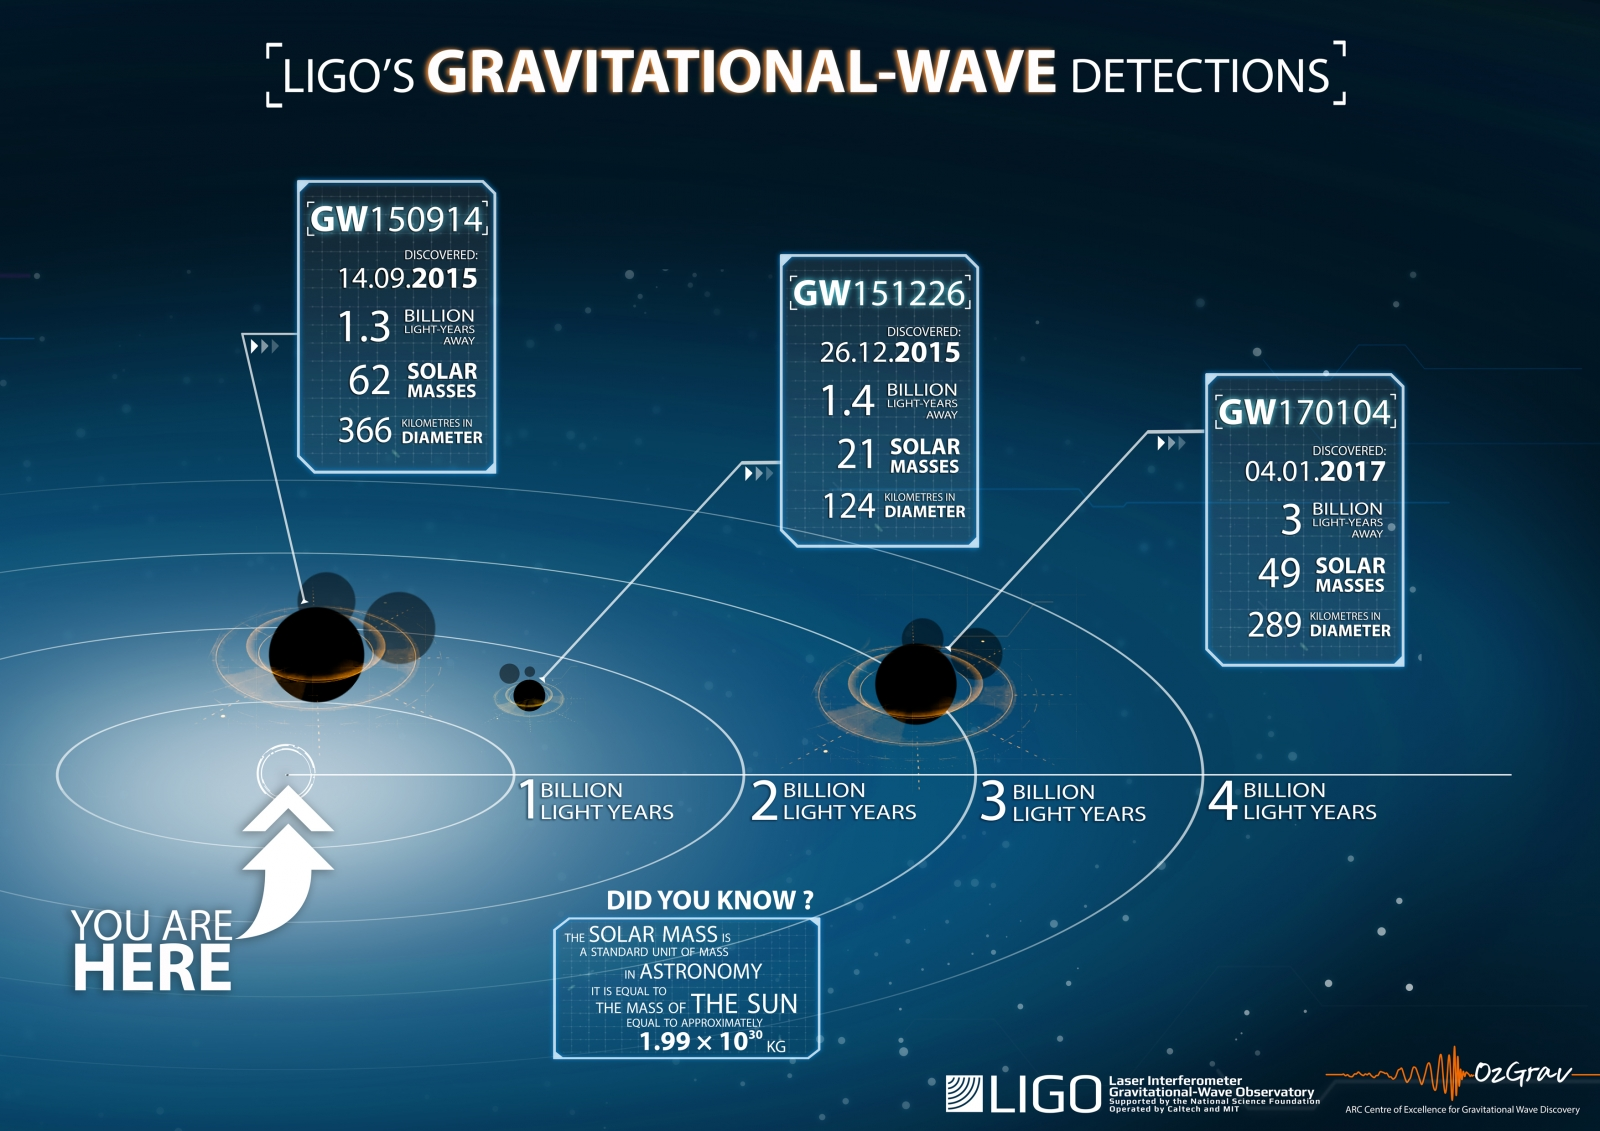 Gravitational waves detected again, at furthest distance yet